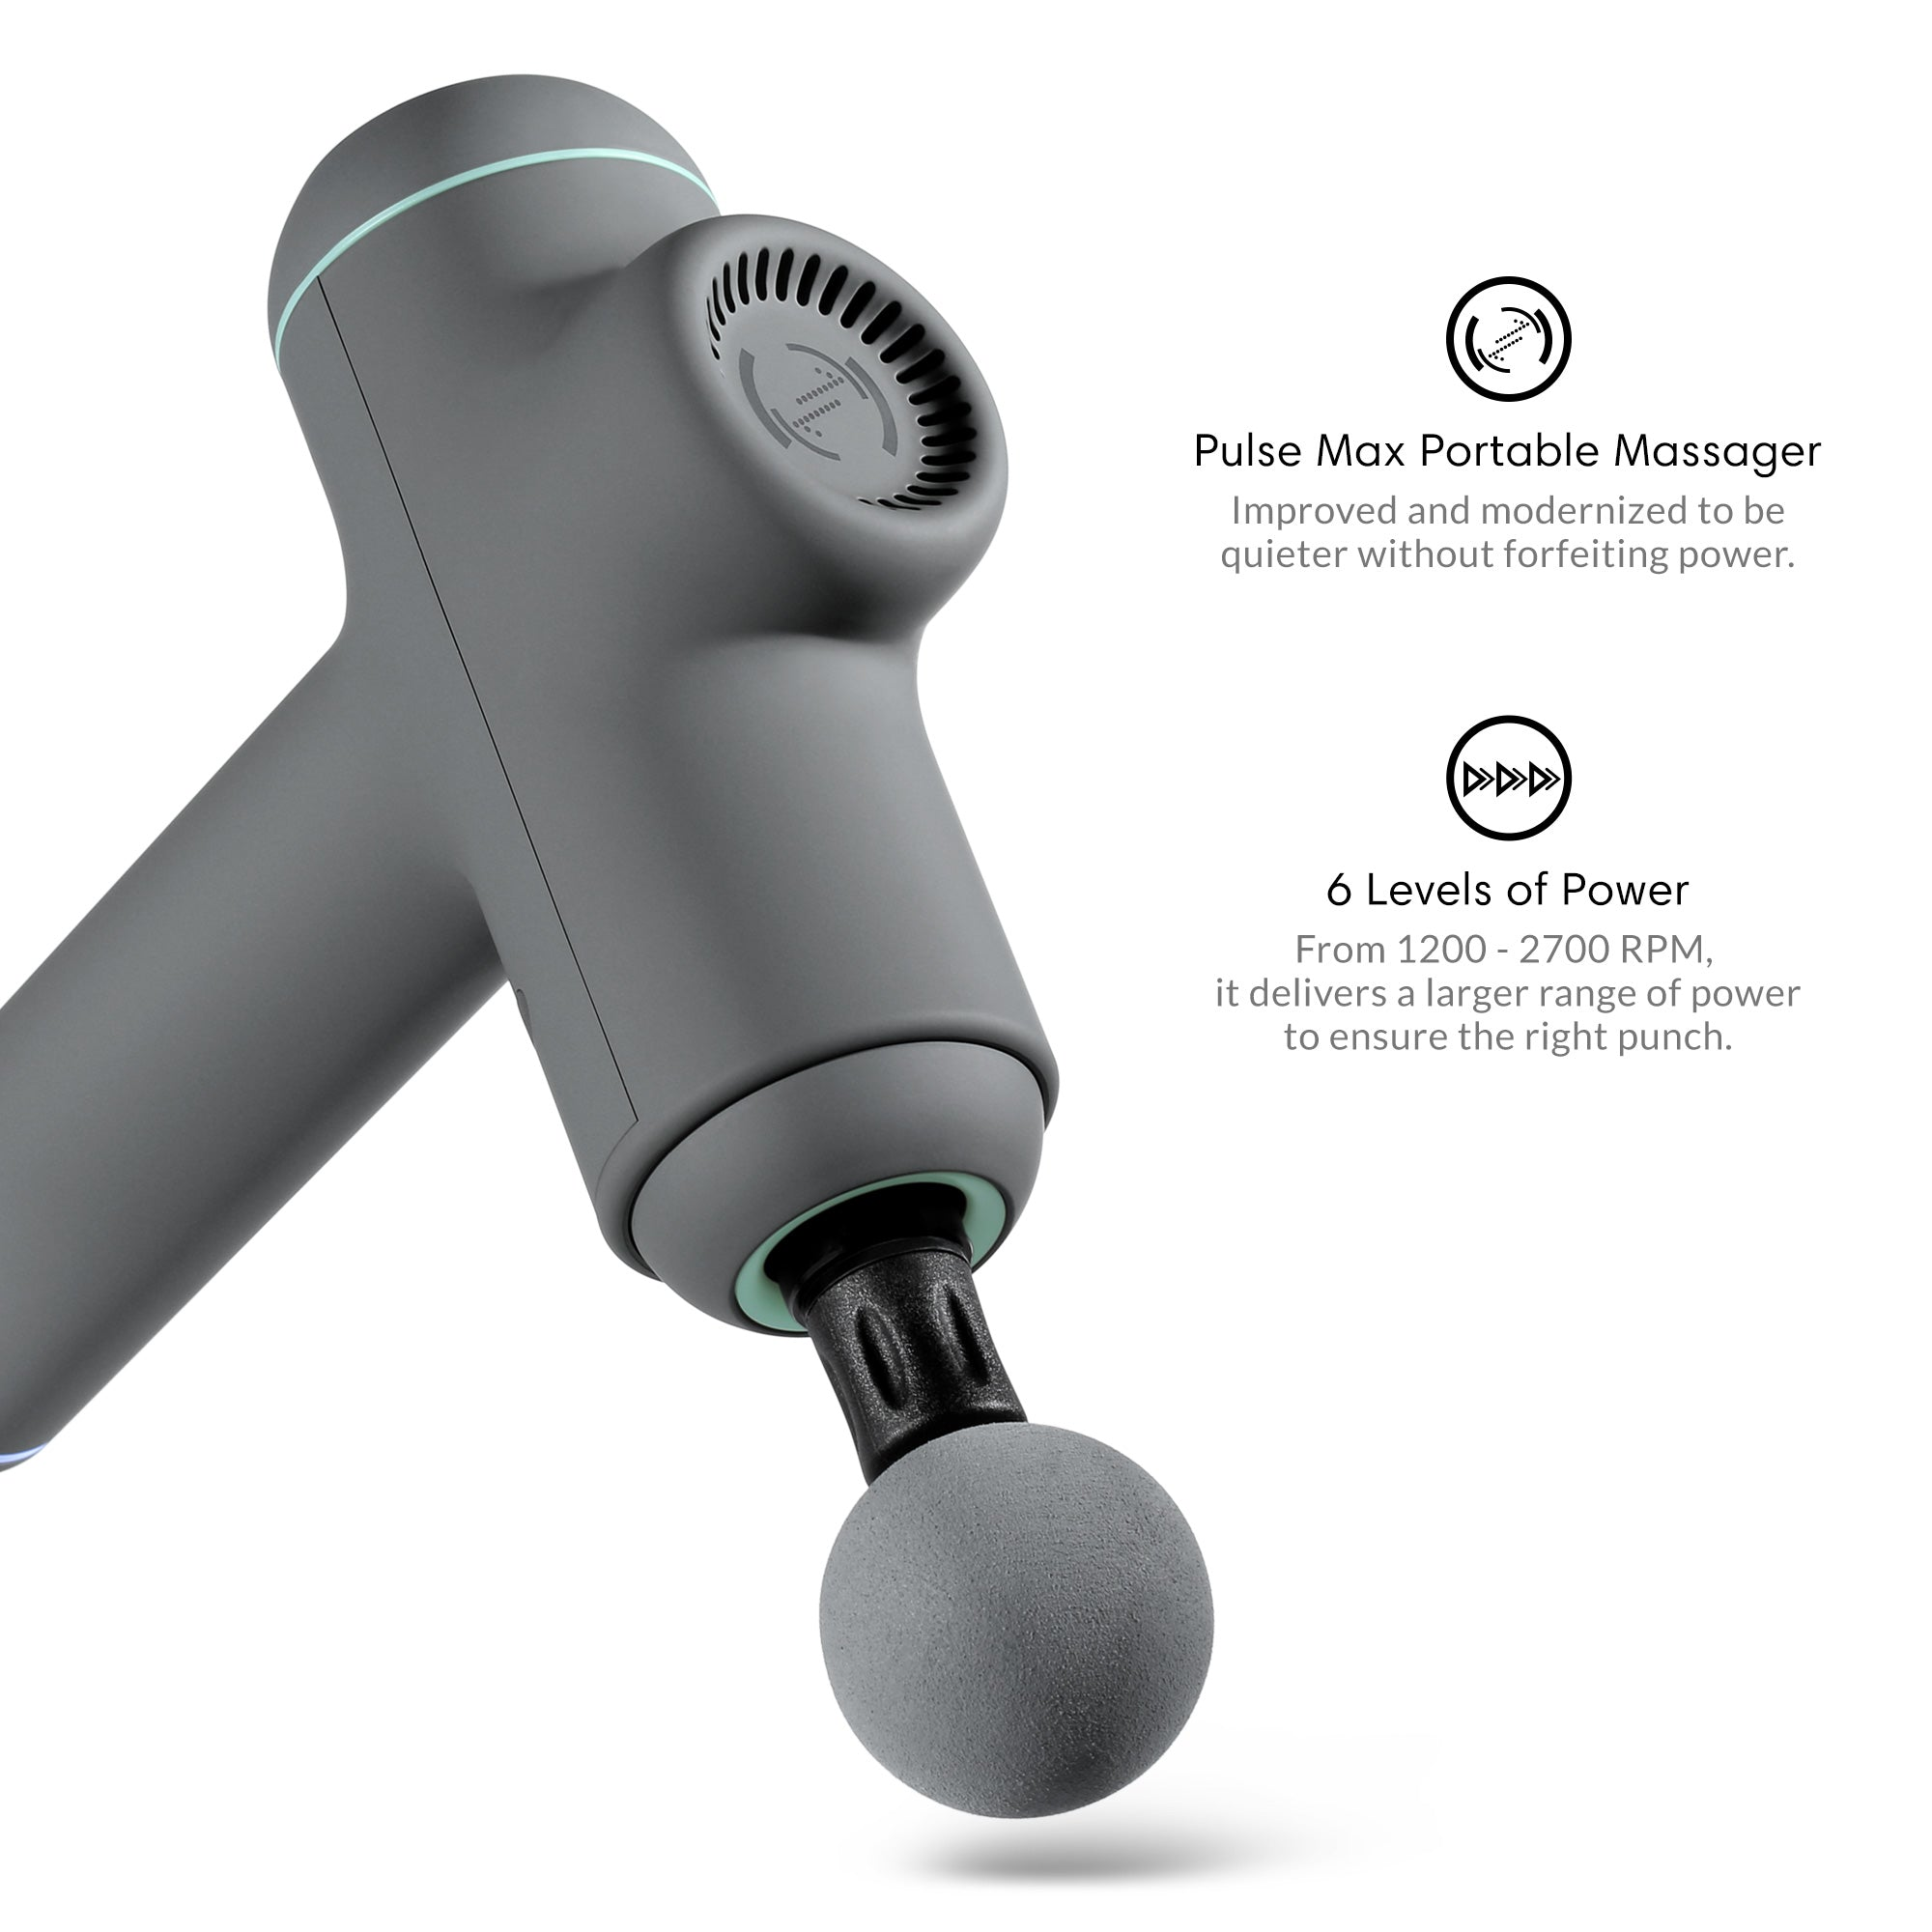 Pulse Max - Portable Massager